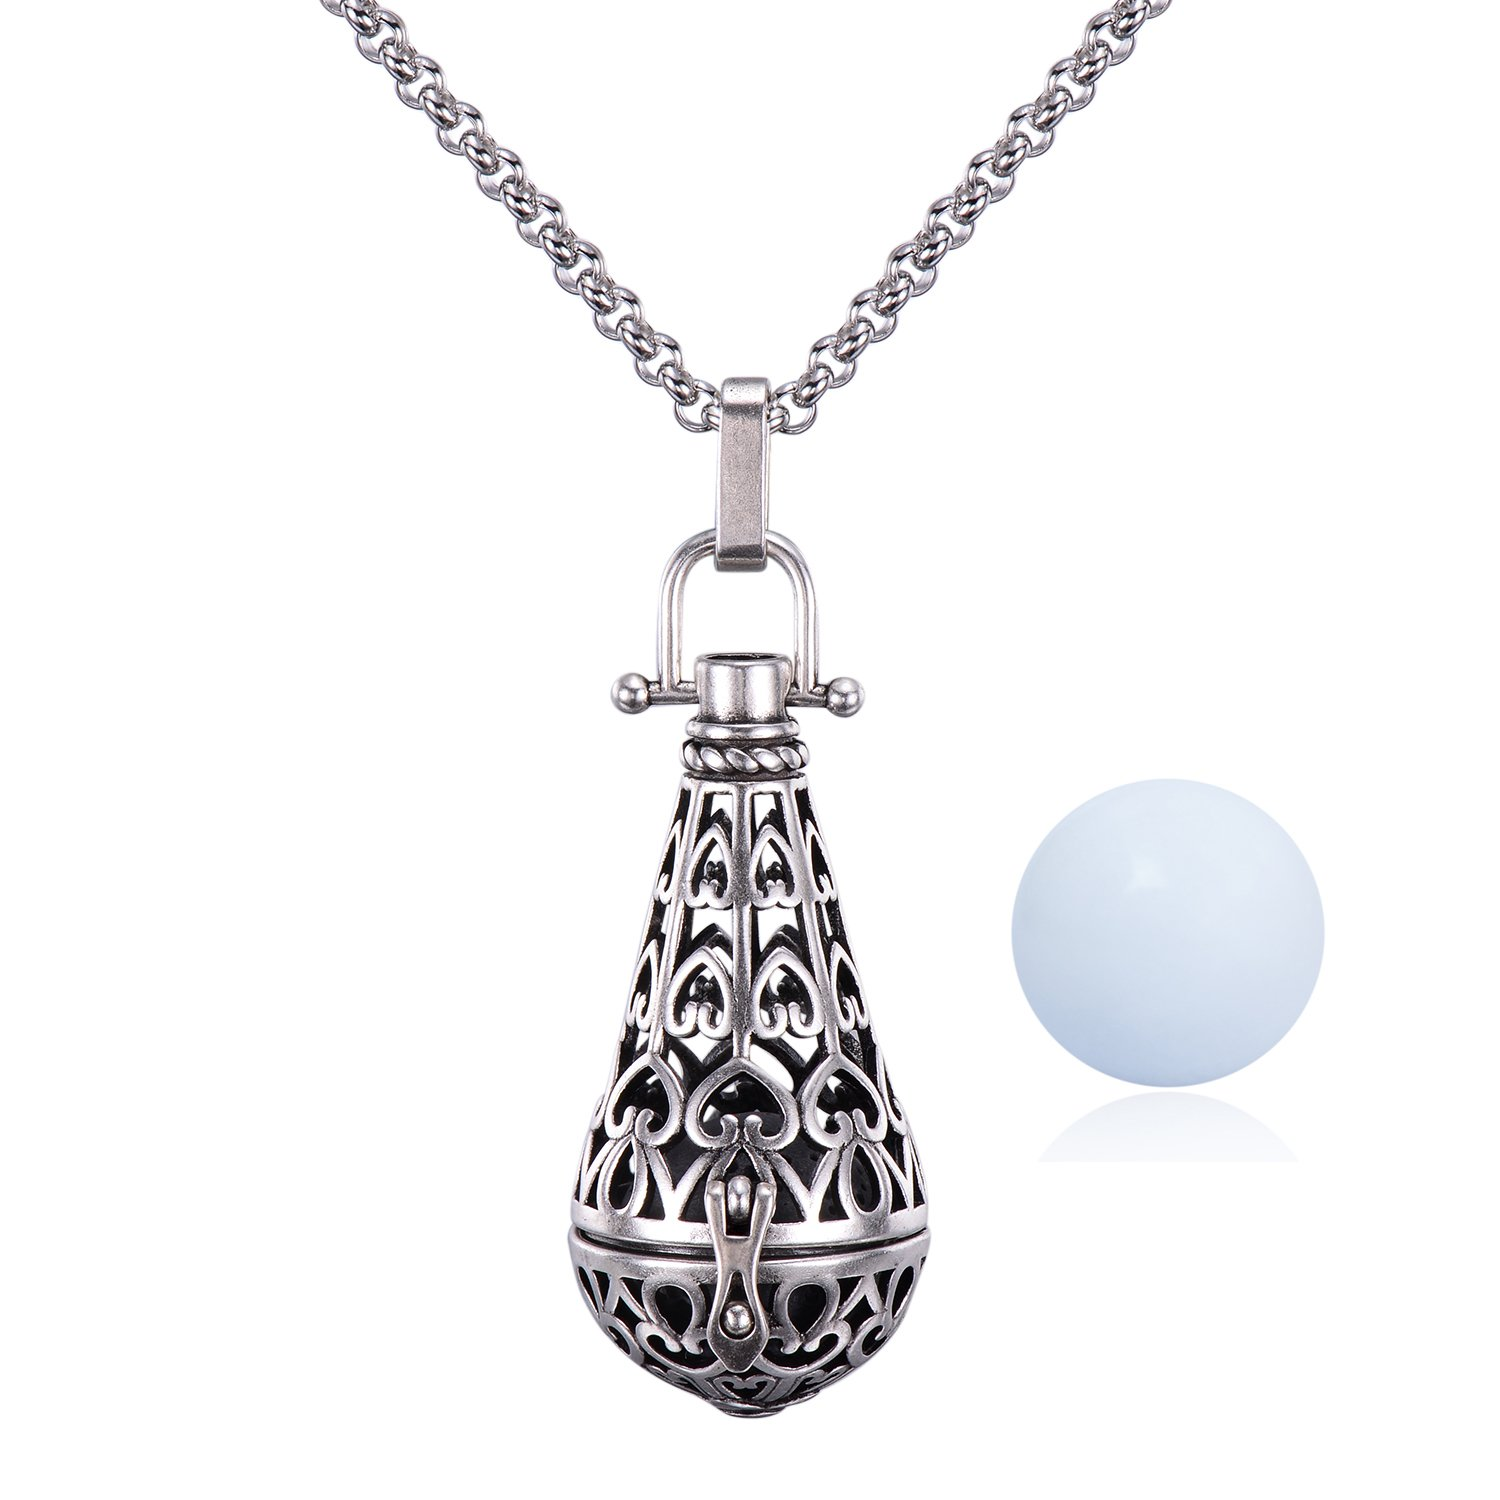 Antique Silver Teardrop Pendant 16MM Harmony Music Ball Mexican Bola Locket Pregnancy Necklace 30